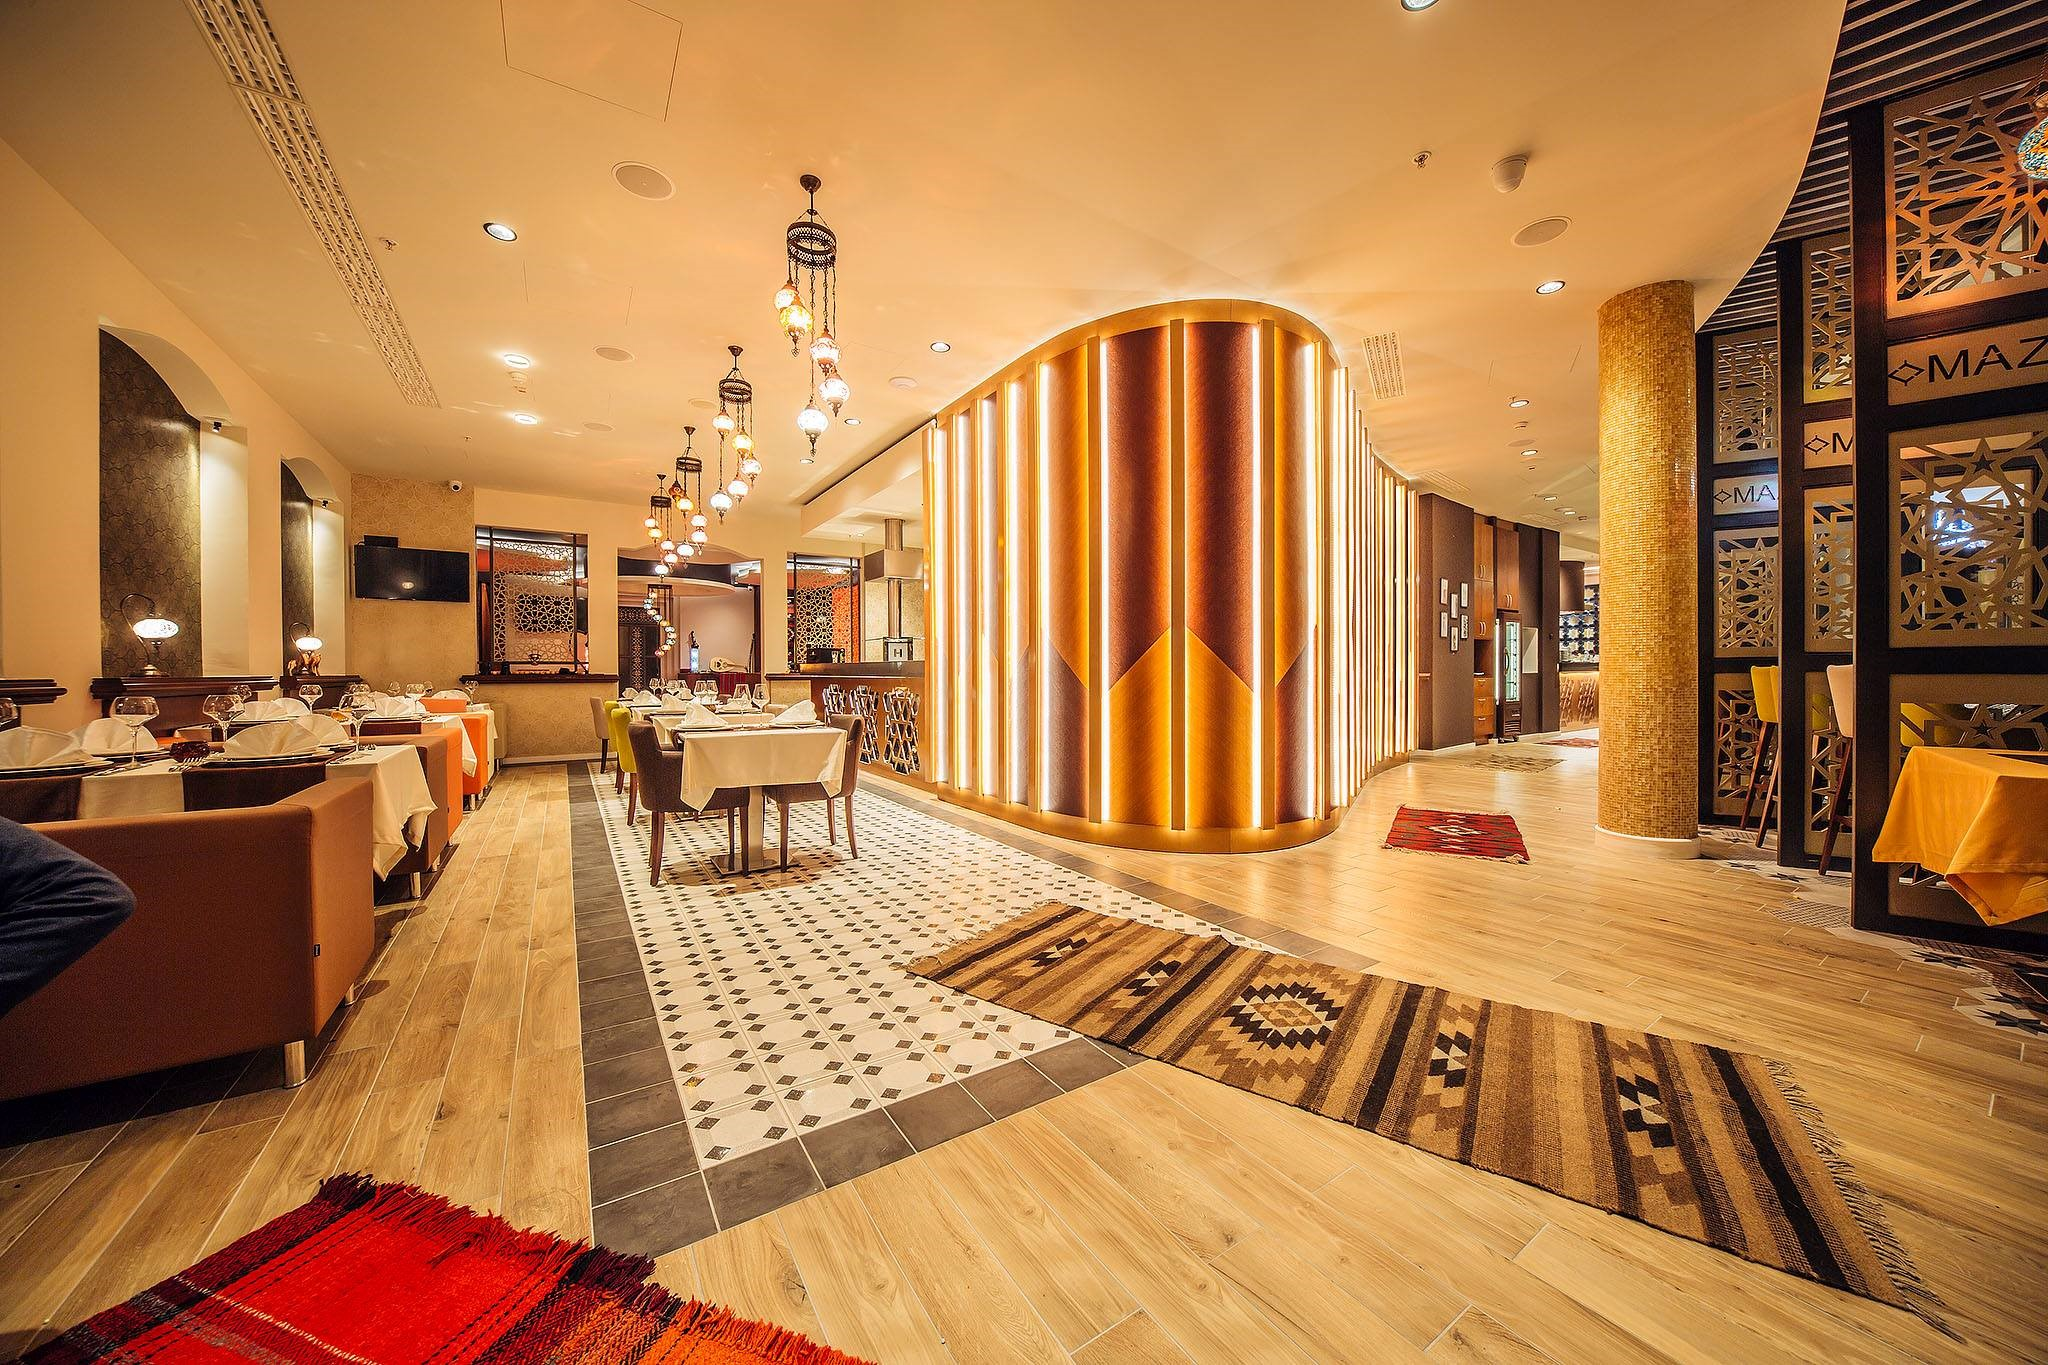 Interiors by Jacquin – Stylish living from a global perspective